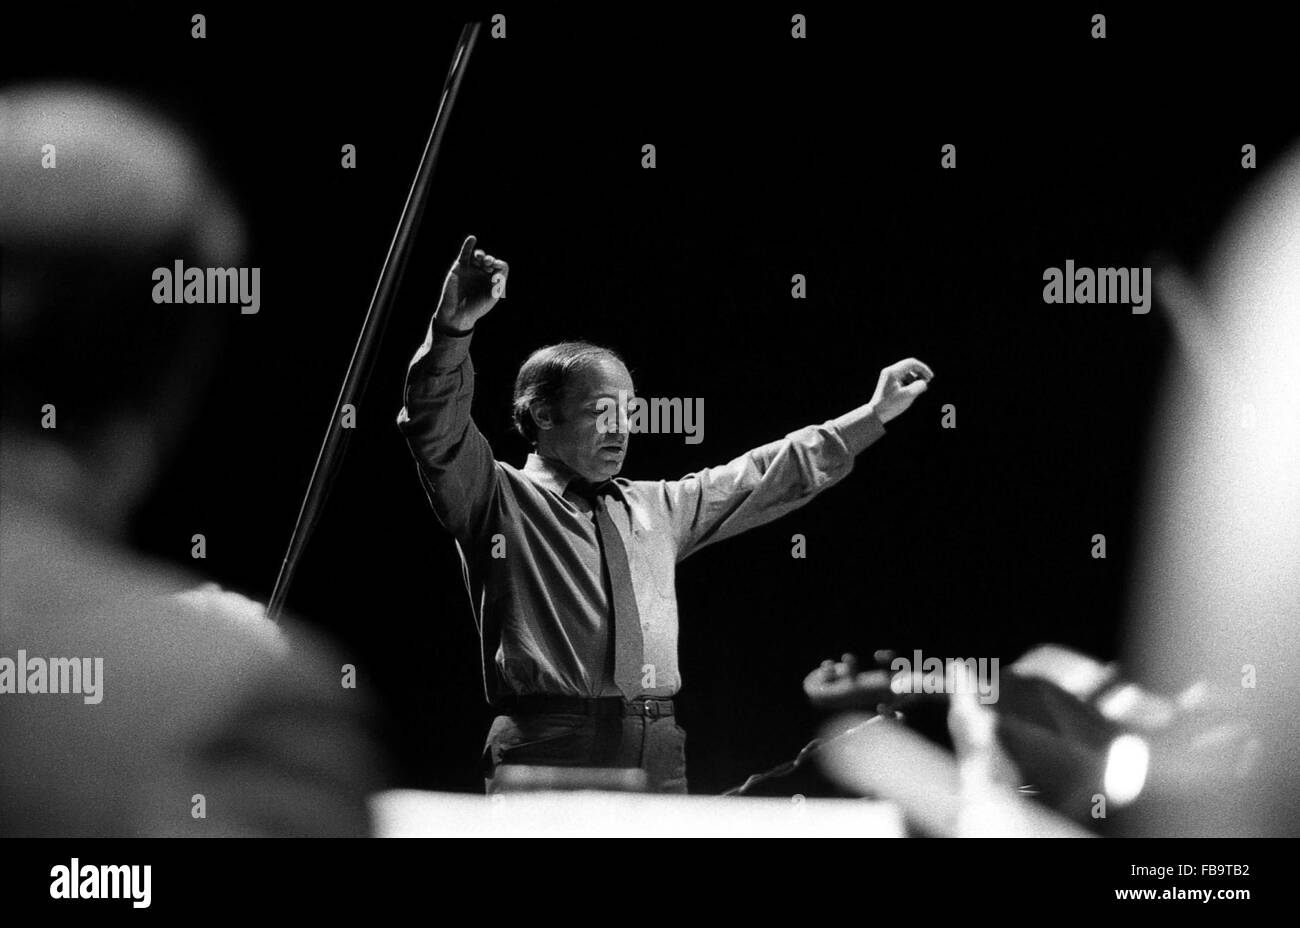 The french conductor Pierre BOULEZ. -  1972  -  France / Ile-de-France (region) / Paris  -  The french conductor - Stock Image